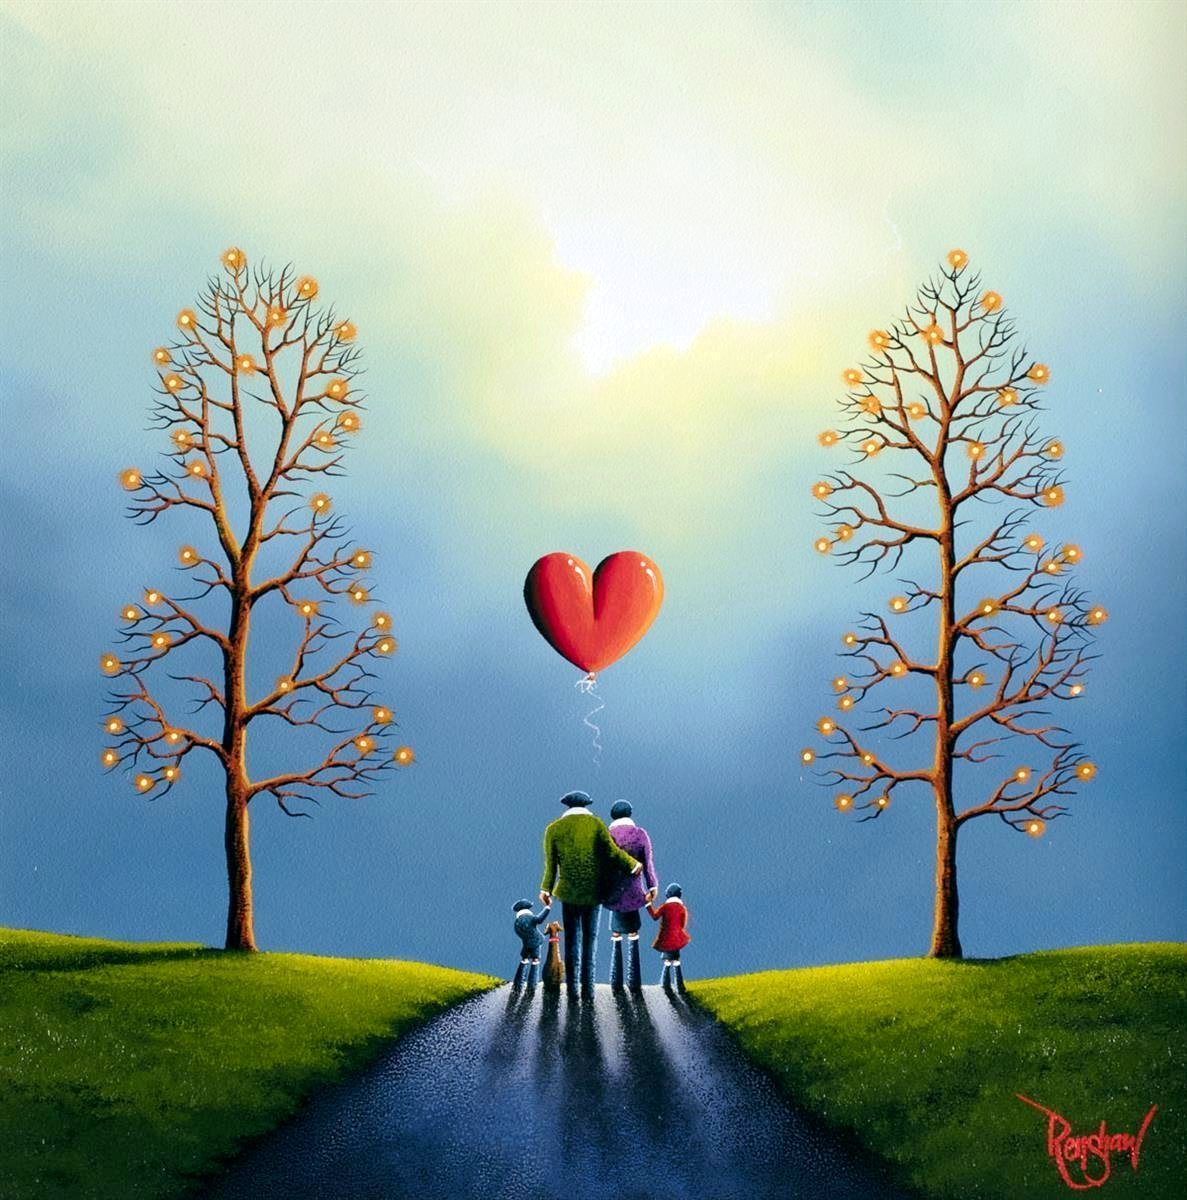 Everlasting Love David Renshaw